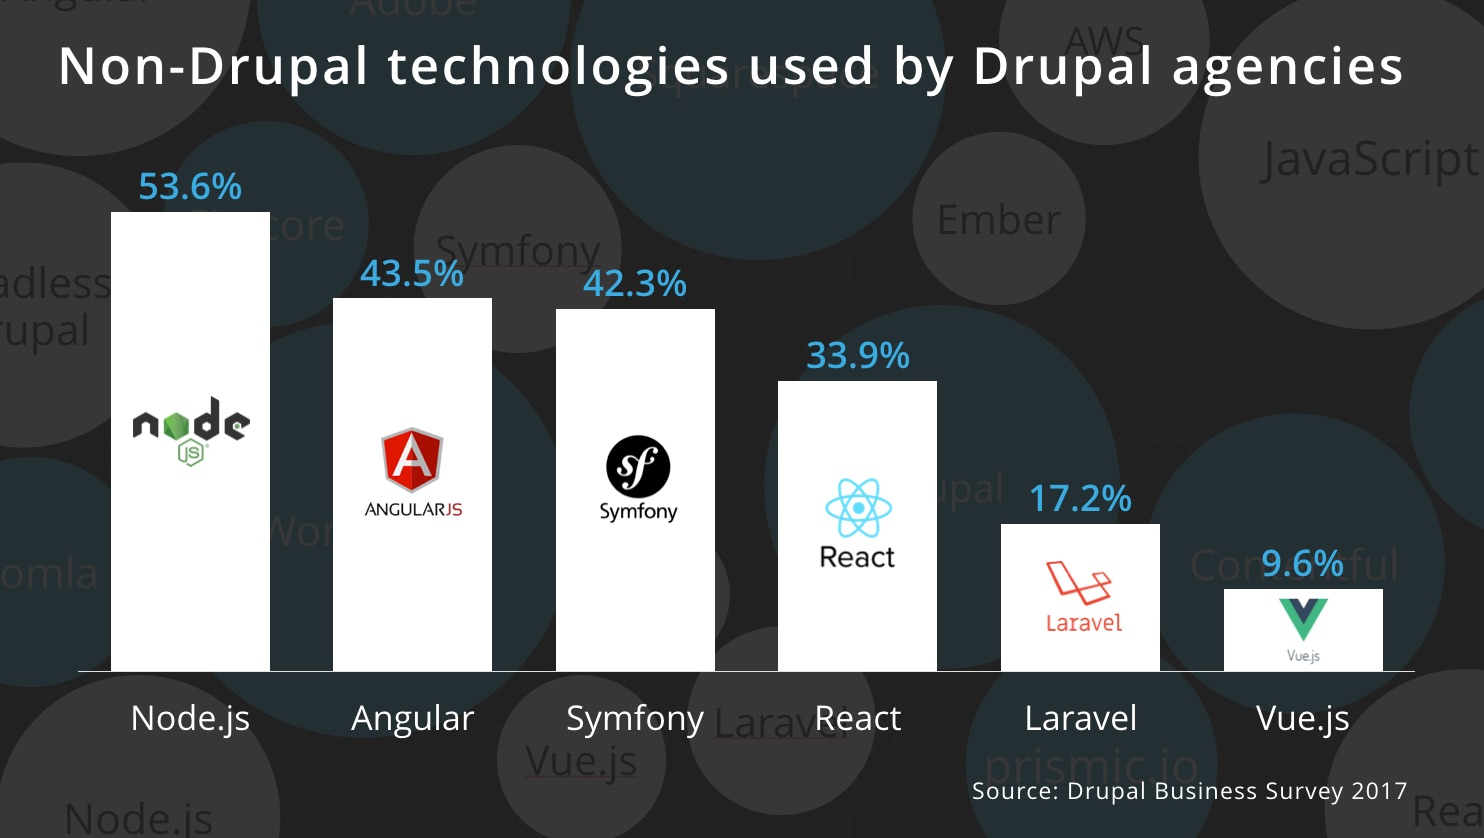 What other technologies do Drupal agencies use?